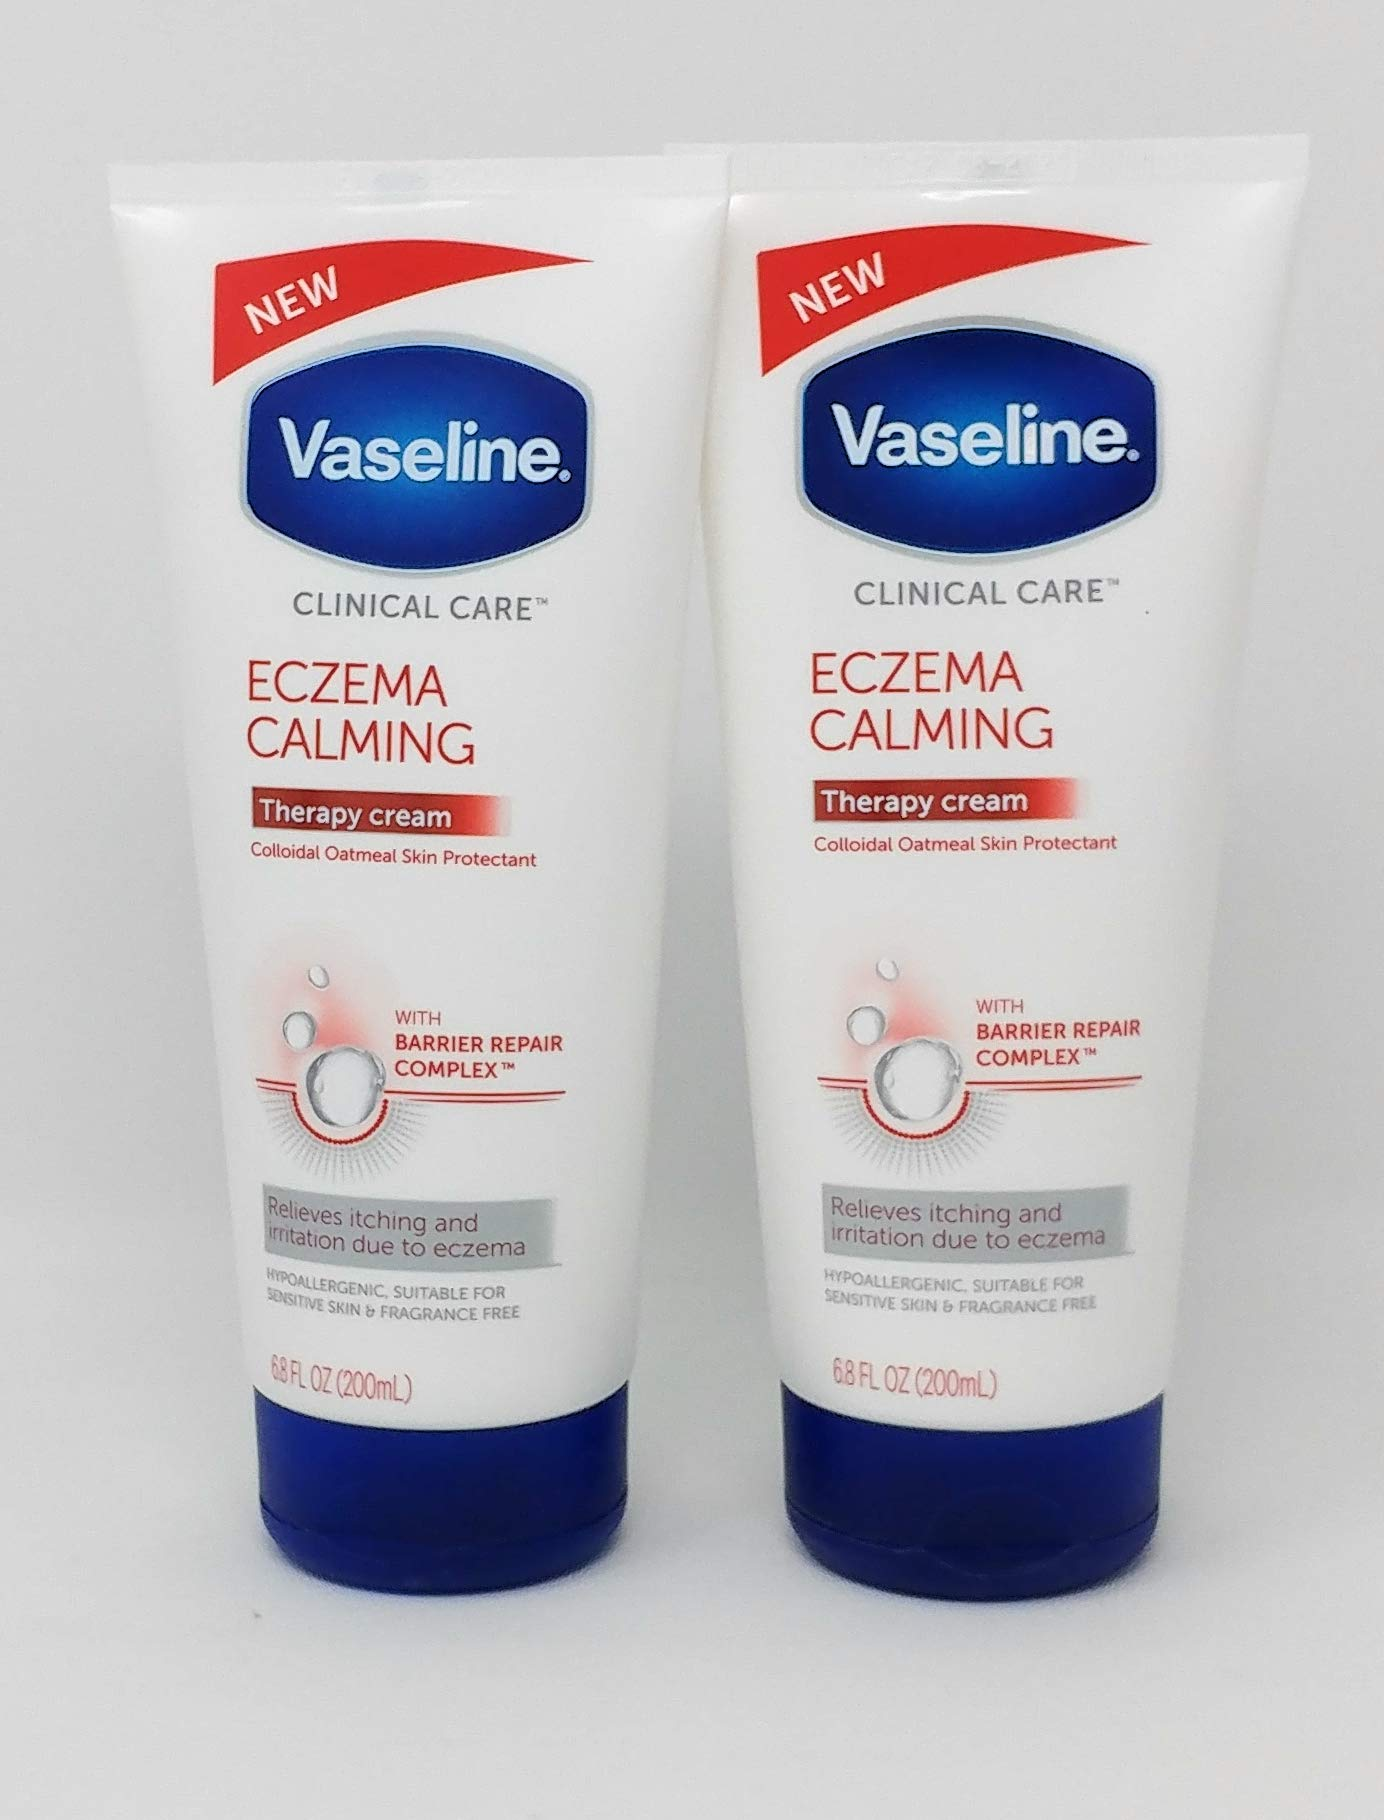 NEW Eczema Calming Hand And Body Lotion Tube 6.8oz - 2-PACK